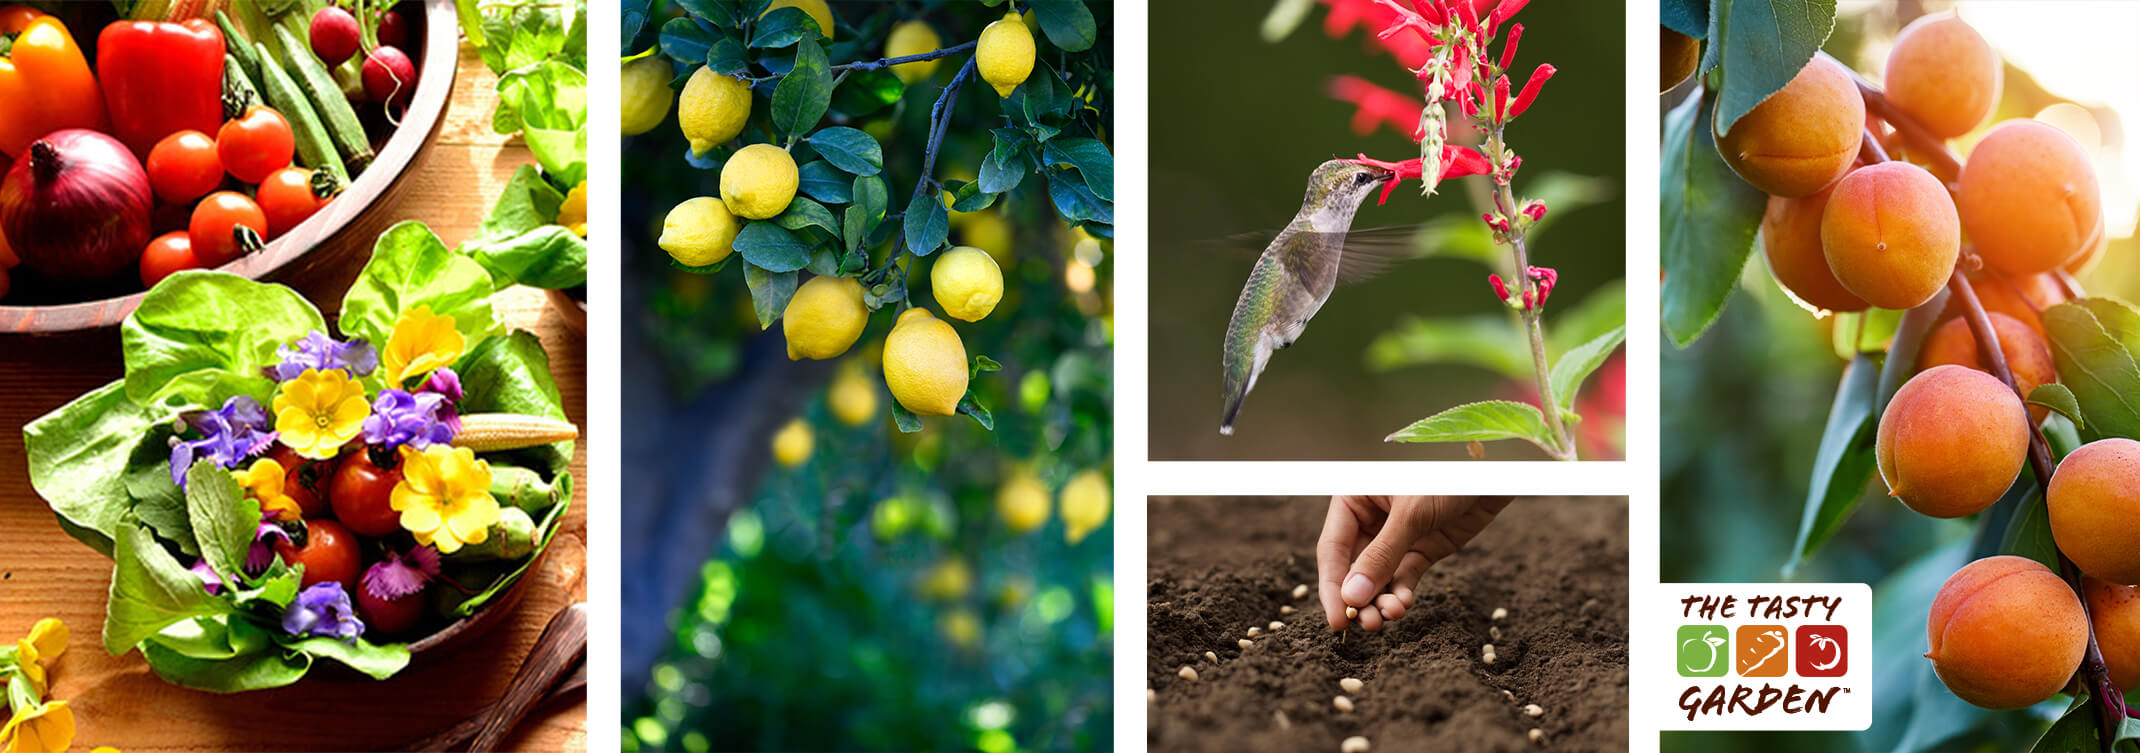 """5 images: a variety of vegetables in a bowl next to a salad with edible flowers; lemons growing on a tree; a hummingbird enjoying pineapple sage blooms; a person planting seeds in the ground; and peaches growing on a tree; and a white box with the text """"The Tasty Garden"""" and its logo"""